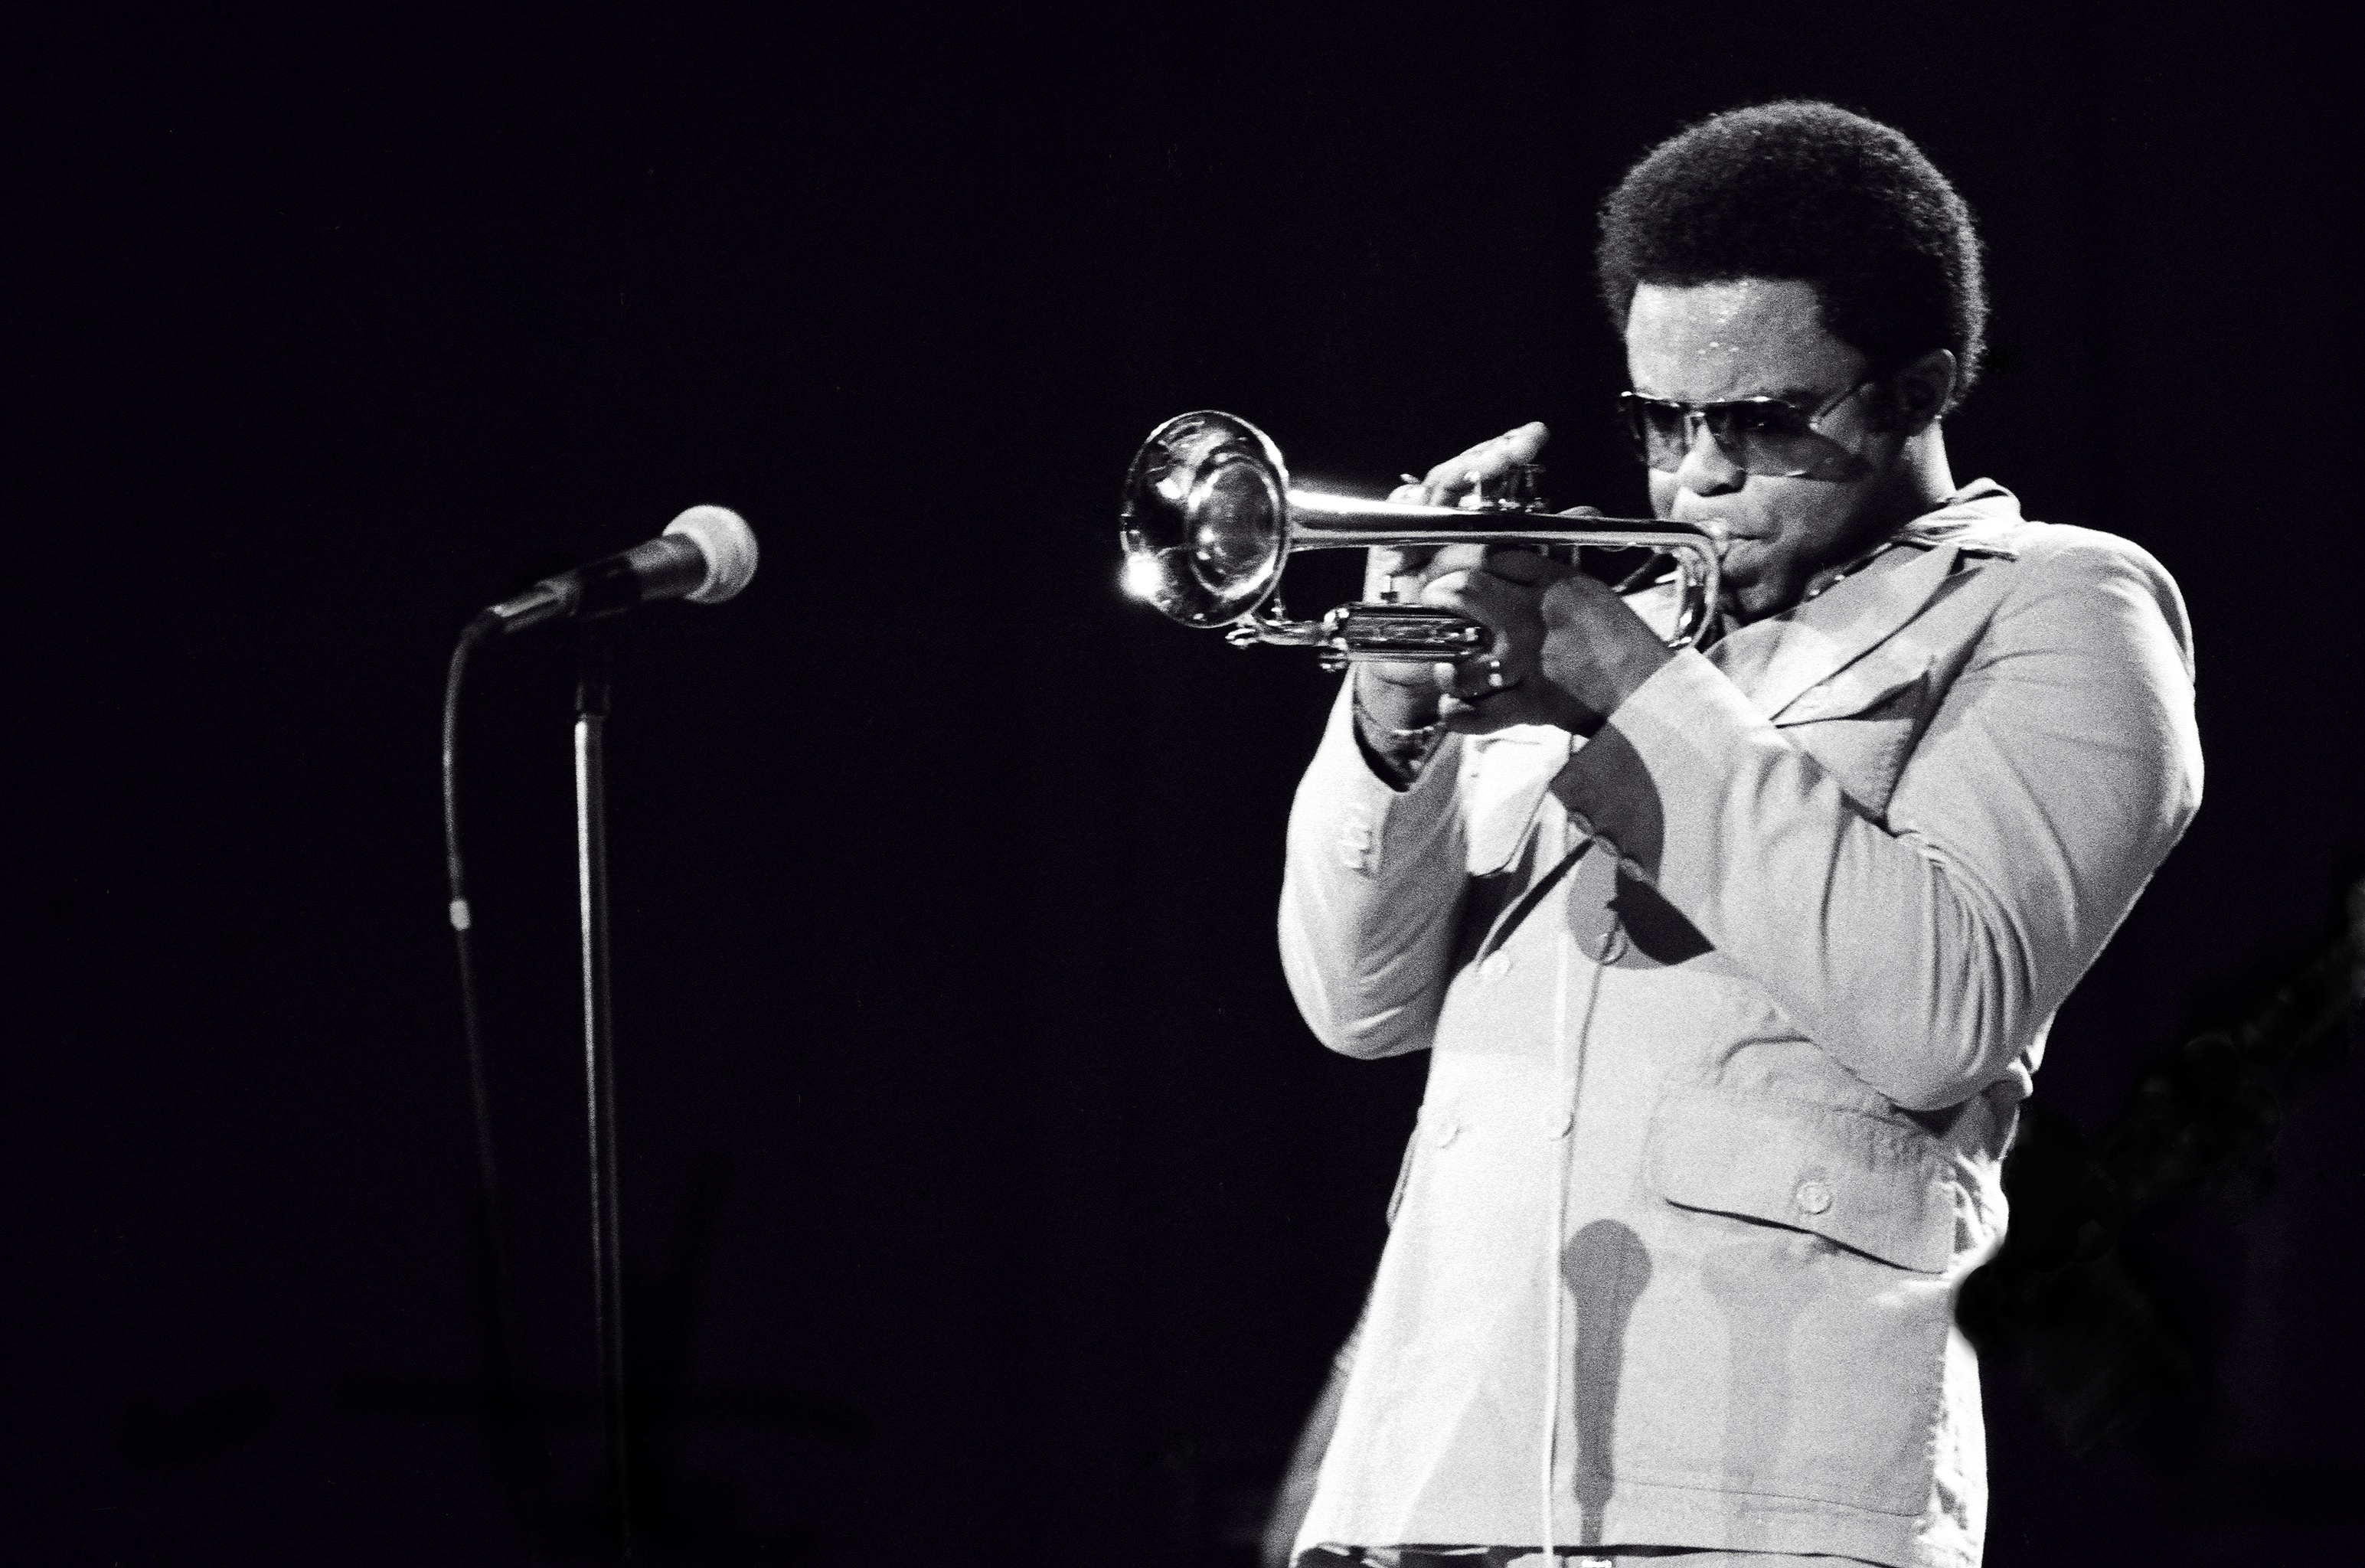 Monday Morning Mixtape: Talkin' All That Jazz 5 (A Tribute to Blue Note Records)